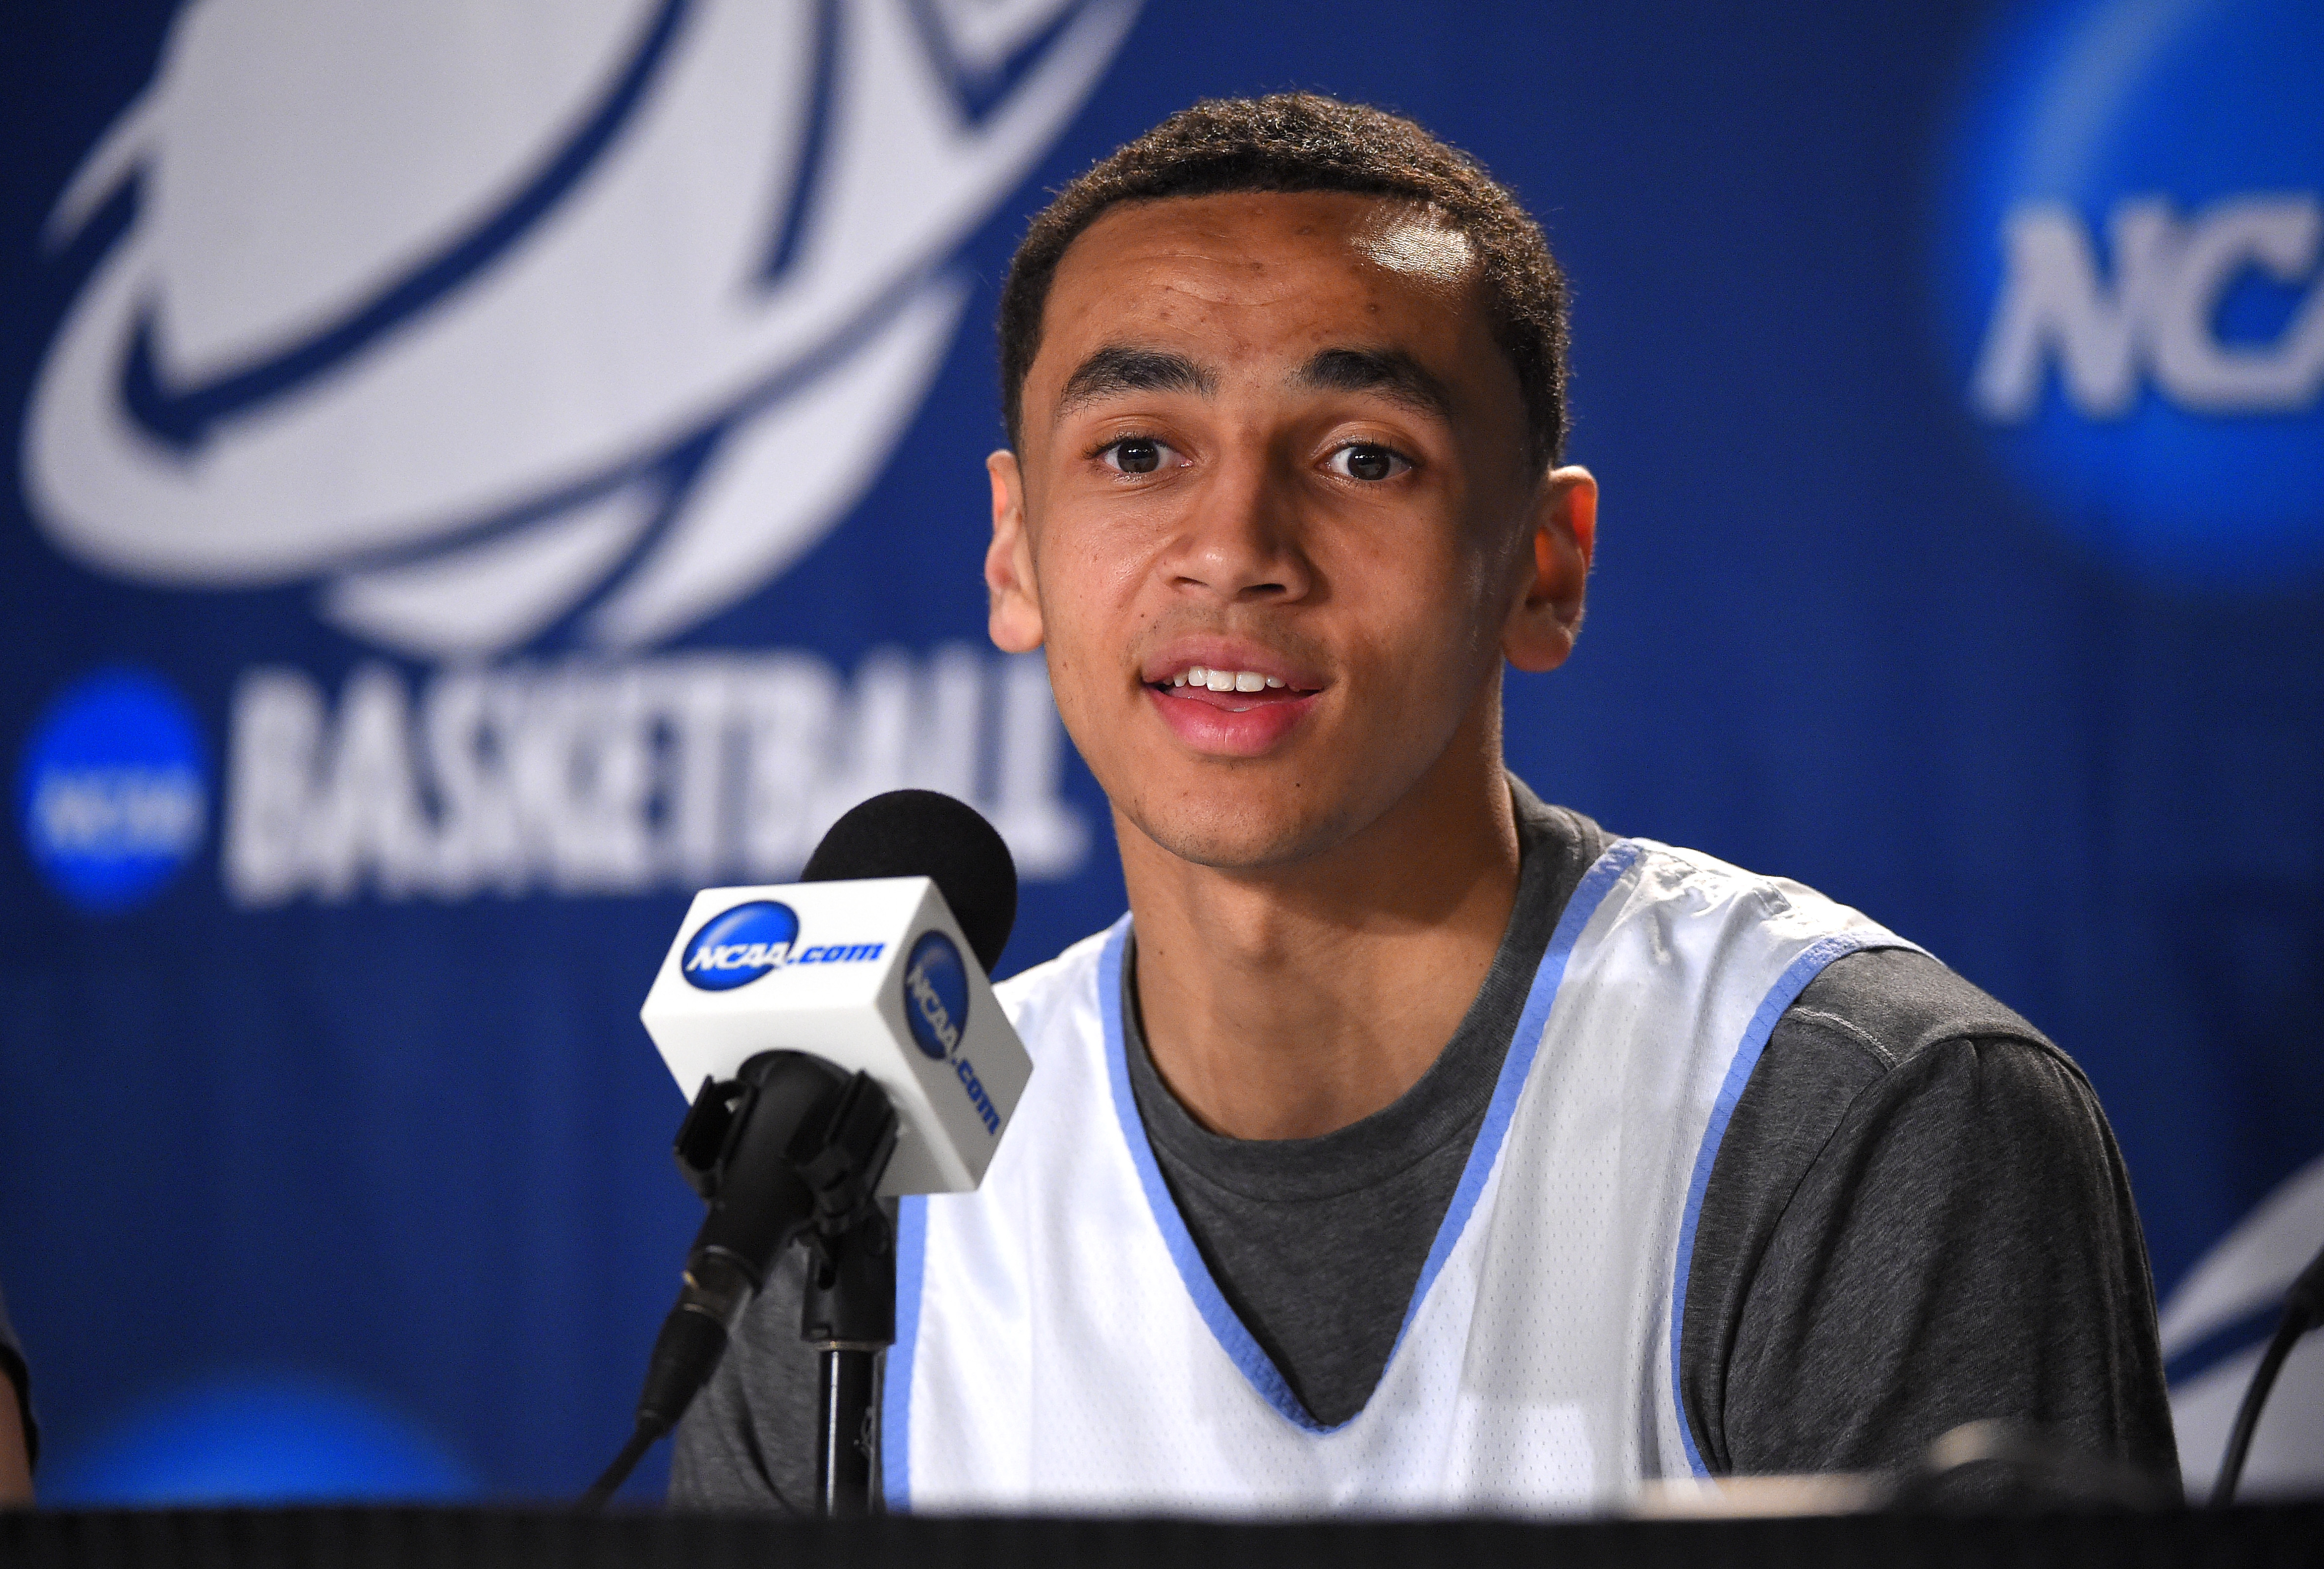 FILE - This March 25, 2015 file photo shows North Carolina guard Marcus Paige speaking during news conference in Los Angeles. The Tar Heels return four starters and nine of the top 10 starters from a 26-win team that reached the Sweet 16 of the NCAA Tourn